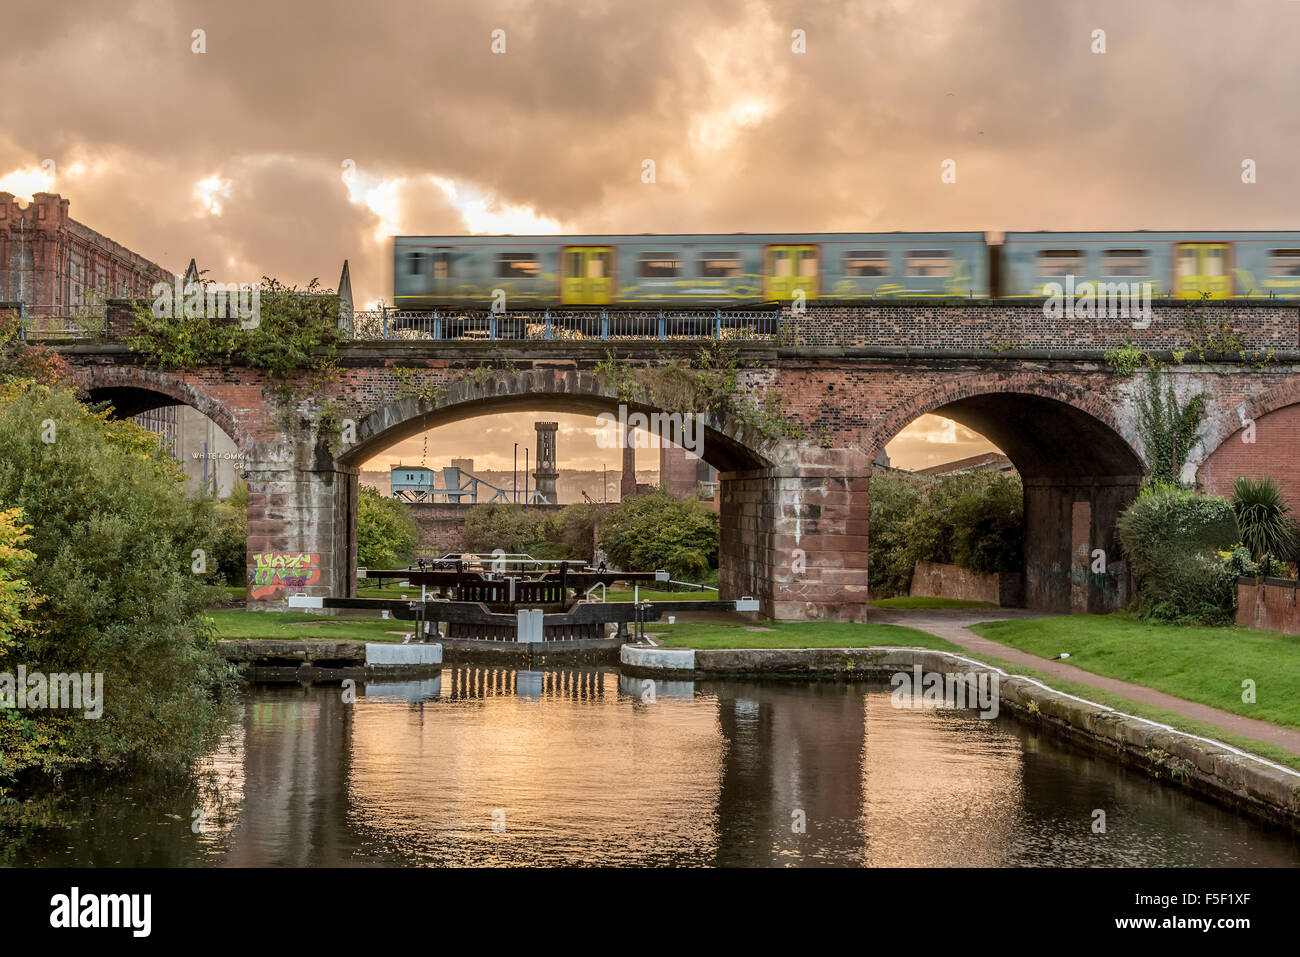 Merseyrail electric train passing over the Leeds Liverpool canal at Stanley Dock. Stock Photo